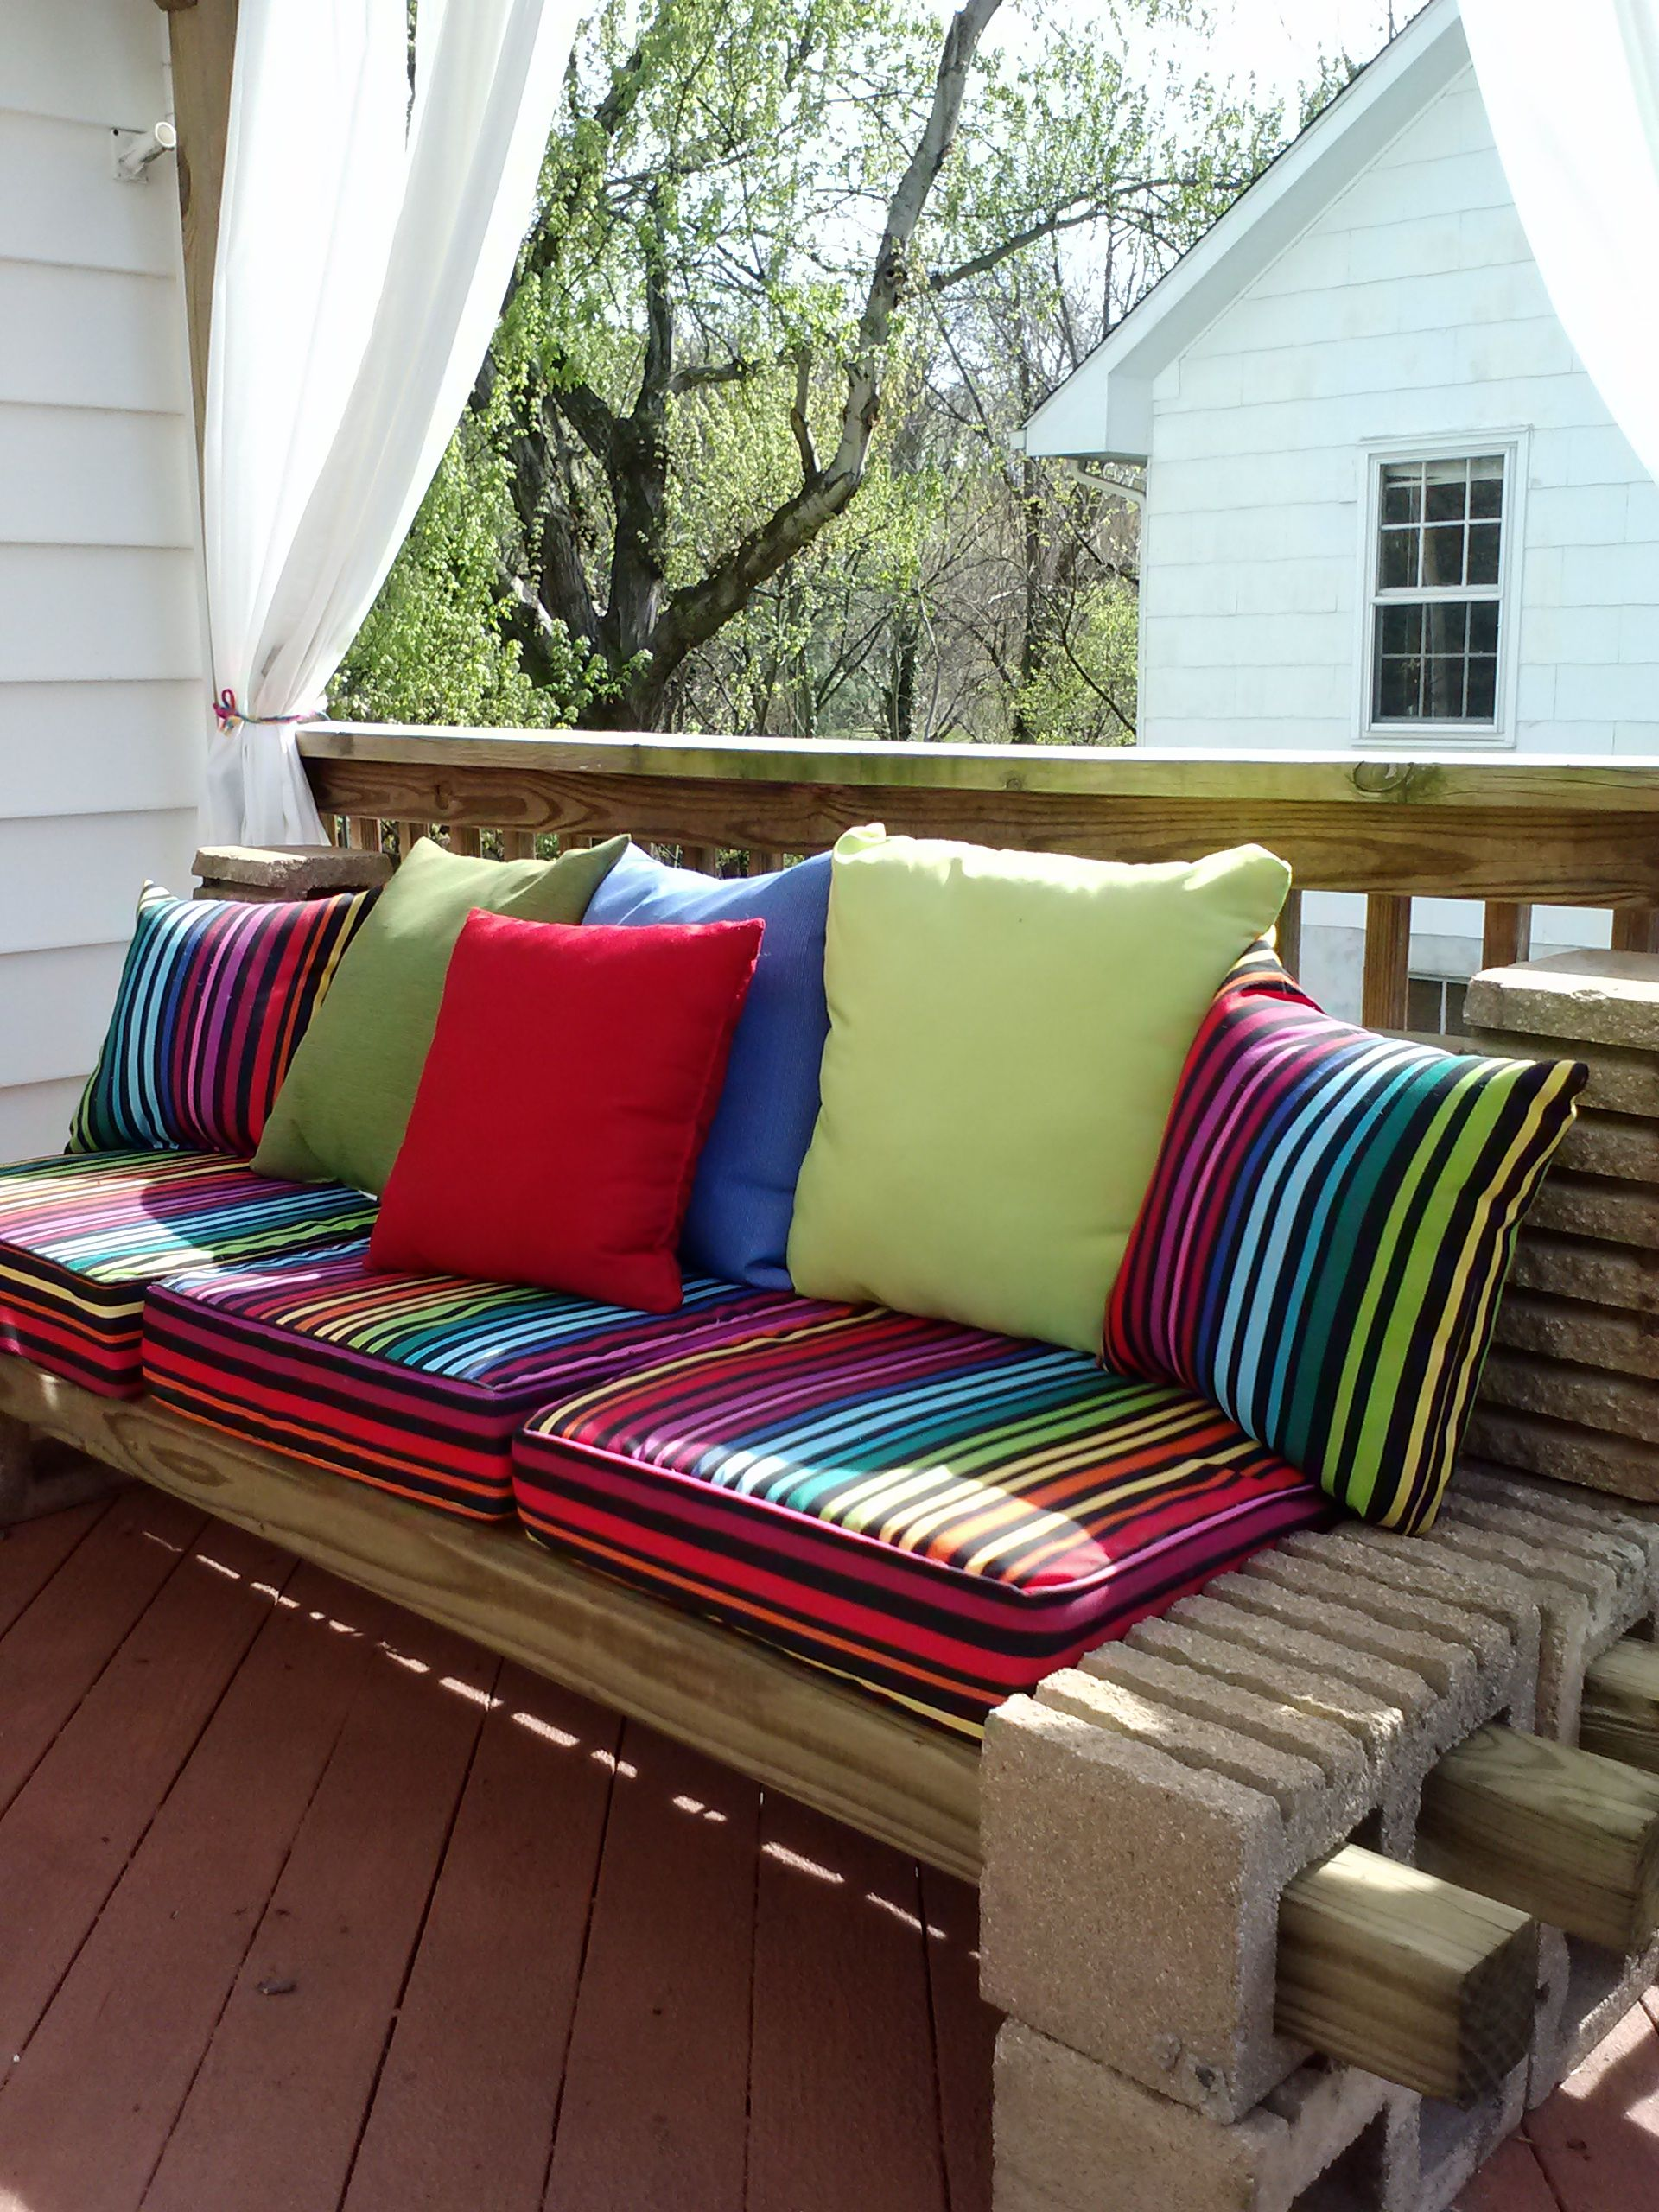 Diy patio furniture cinder blocks - Cinder Block And Bench With Cushions Added Great For Side Patio